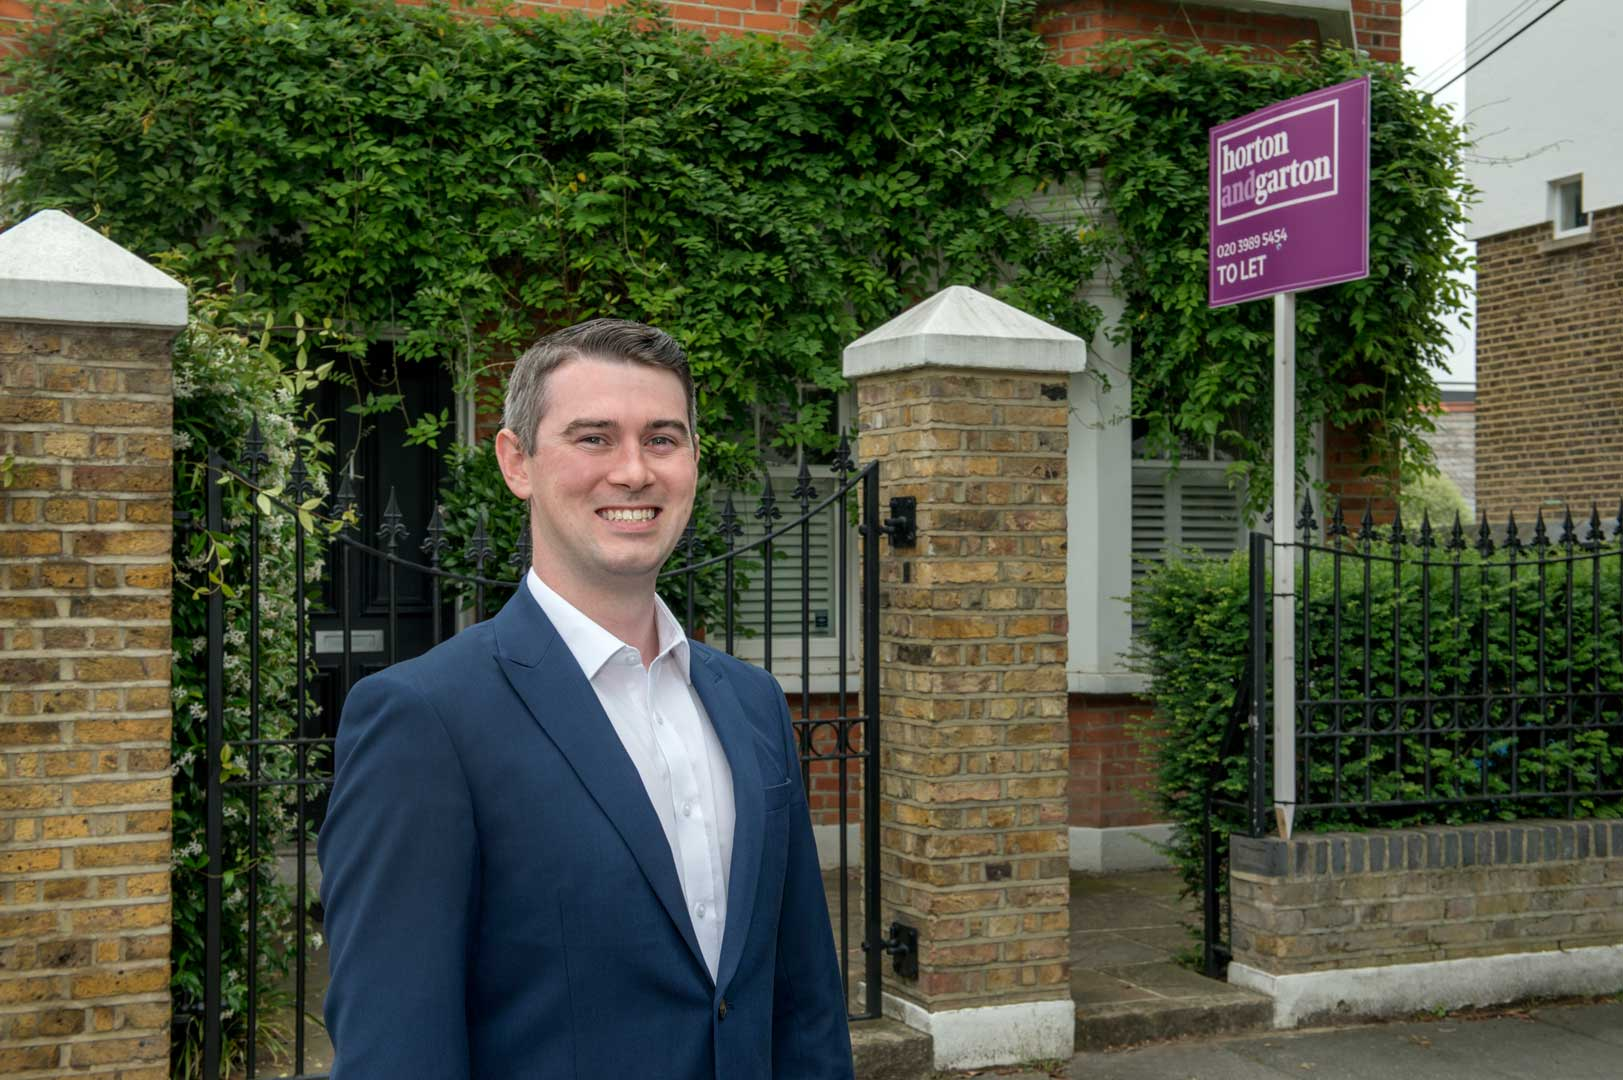 Chiswick Homes: Horton and Garton – A First-Class Bespoke Service